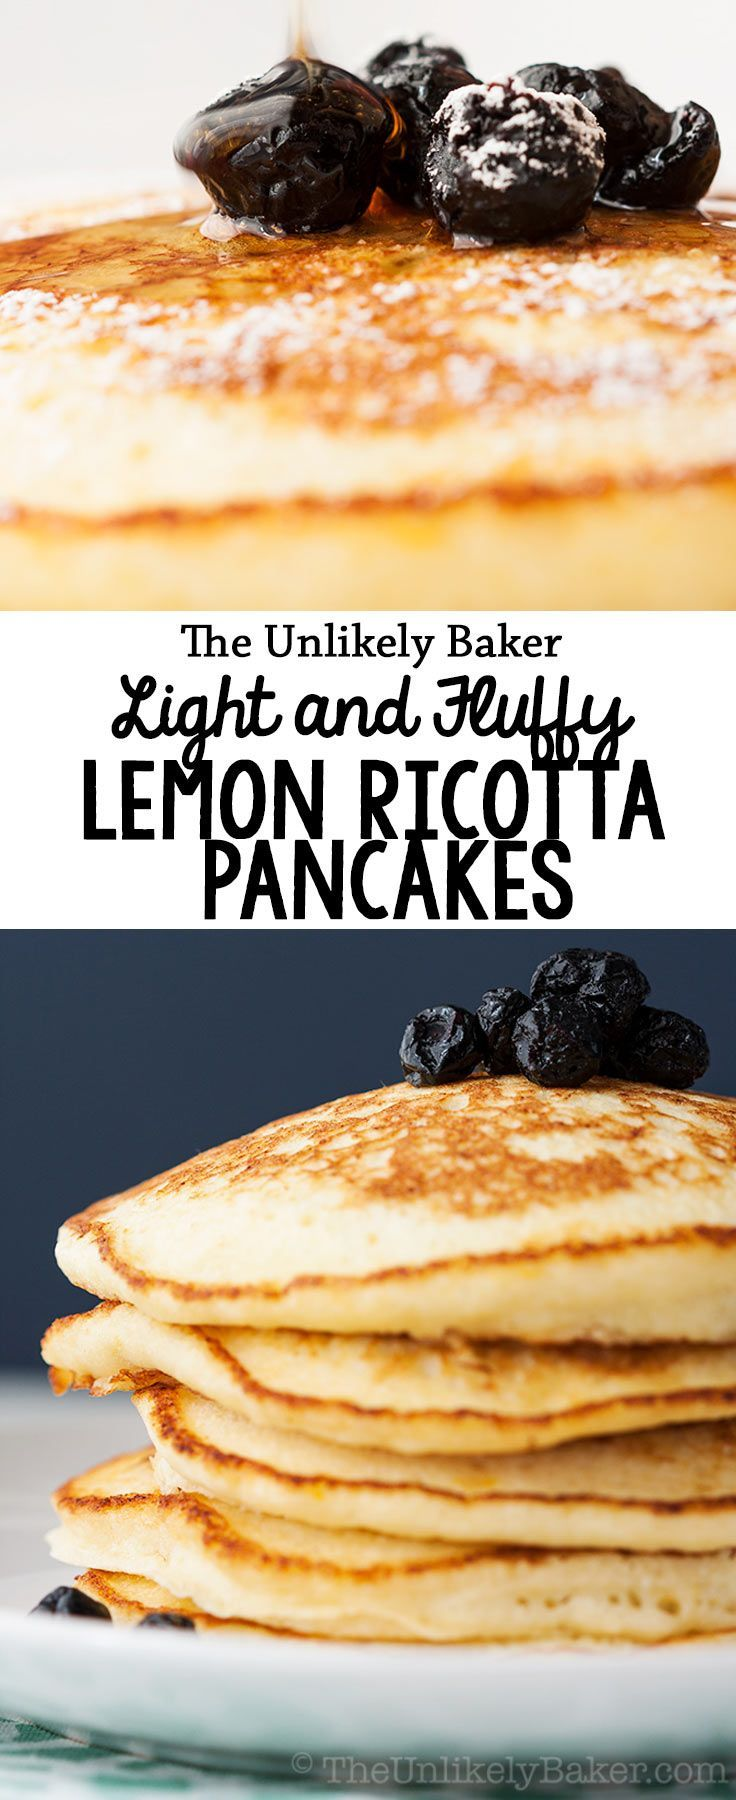 Whip up a batch of these light fluffy lemon ricotta pancakes and start the day with sunshine on a plate! Bright lemon flavor, not too sweet, soft as a cloud.